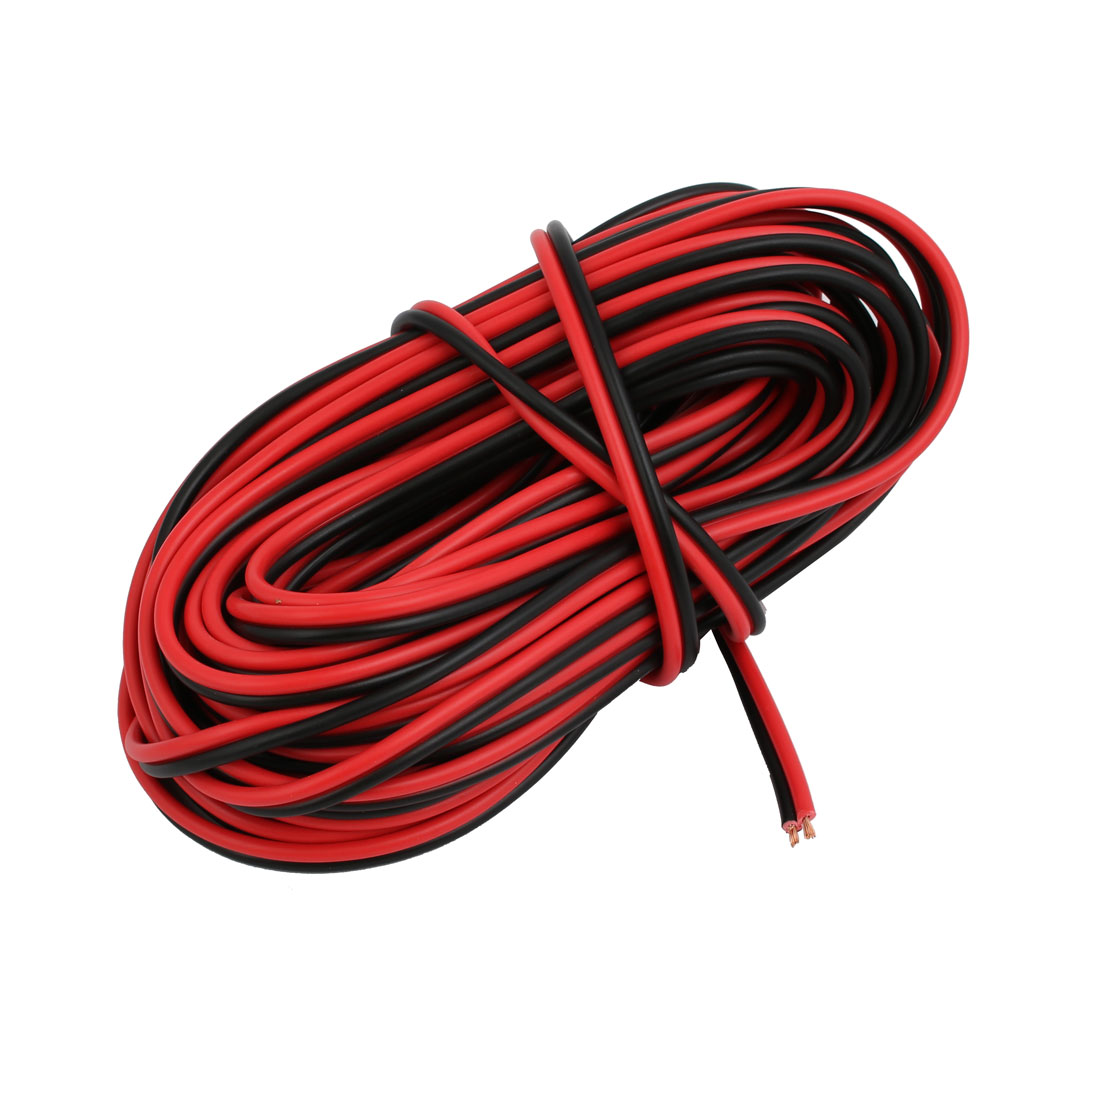 1.2mm2 Indoor Outdoor PVC Insulated Electrical Wire Cable Black Red 9.8 Meter